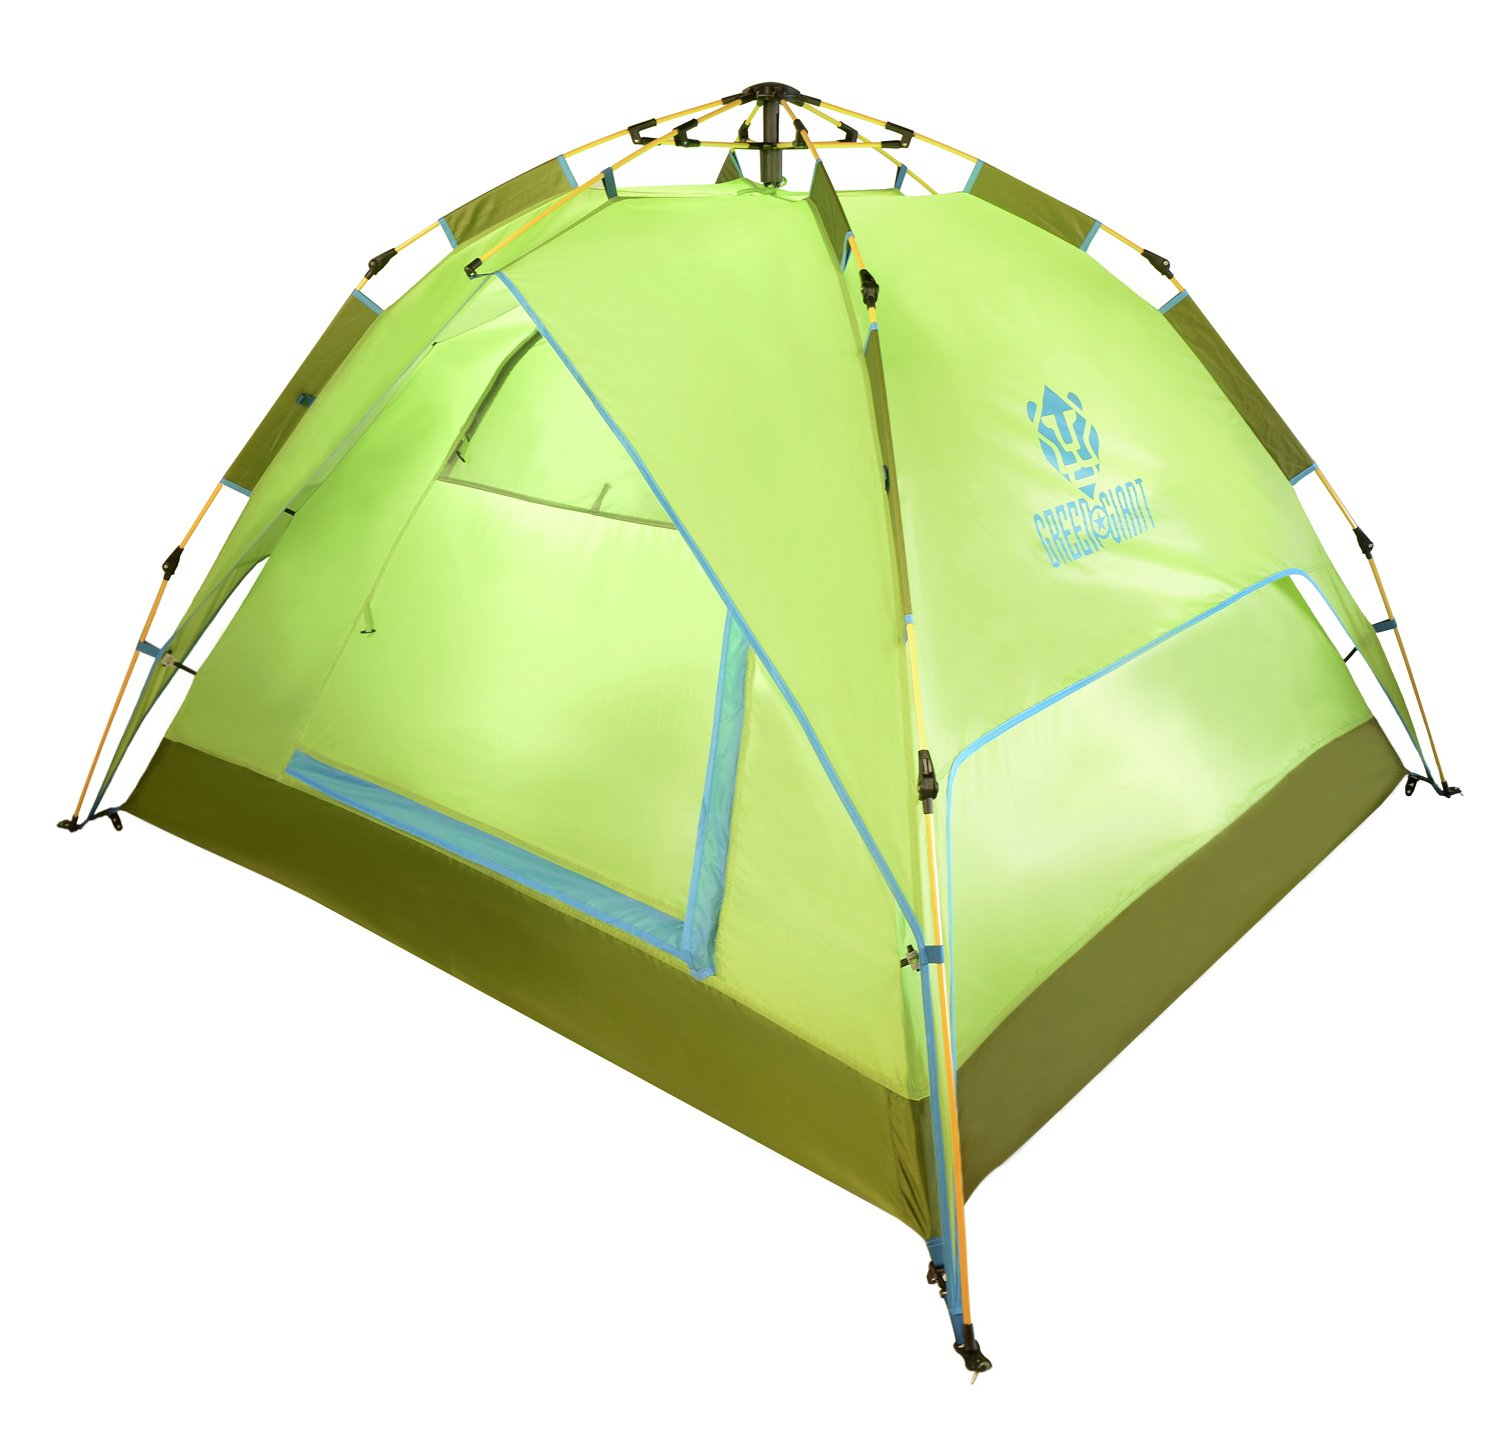 Green&Giant 4 Persons Tent Family Tent for Camping Hiking Backpacking Automatic Quick Opening